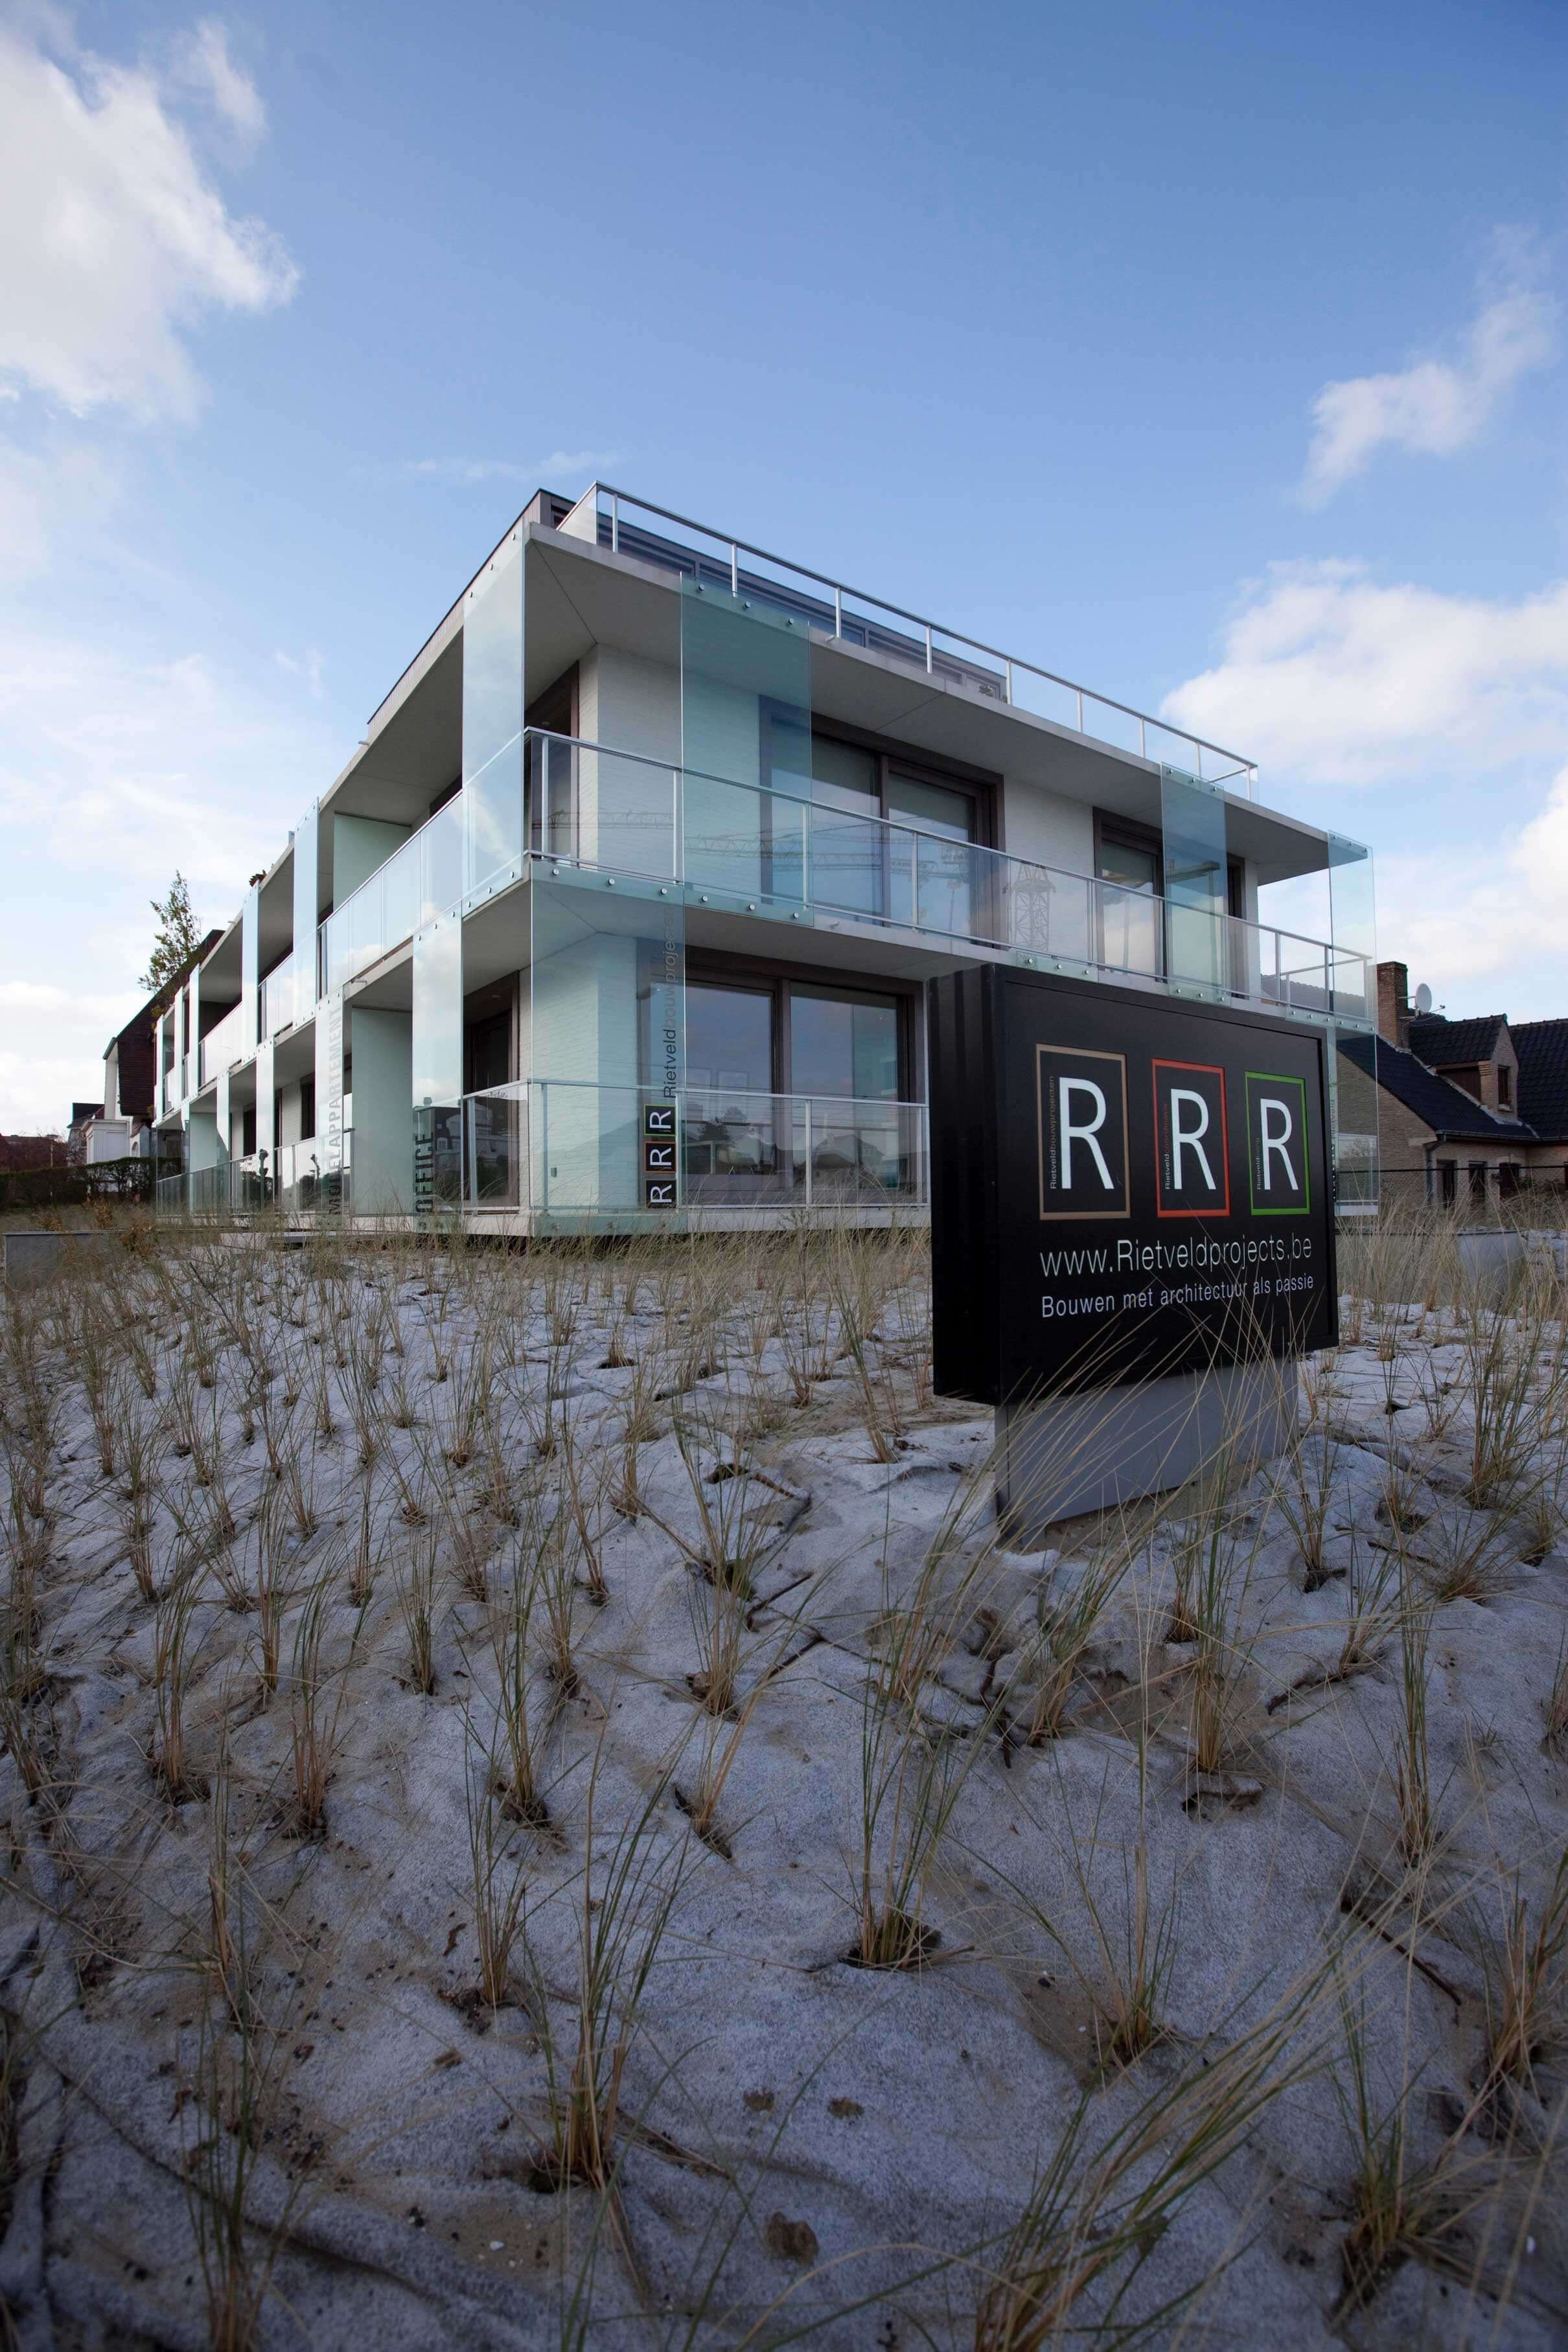 Rietveldprojects.be-Eames-appartement-design-architectuur-kust32